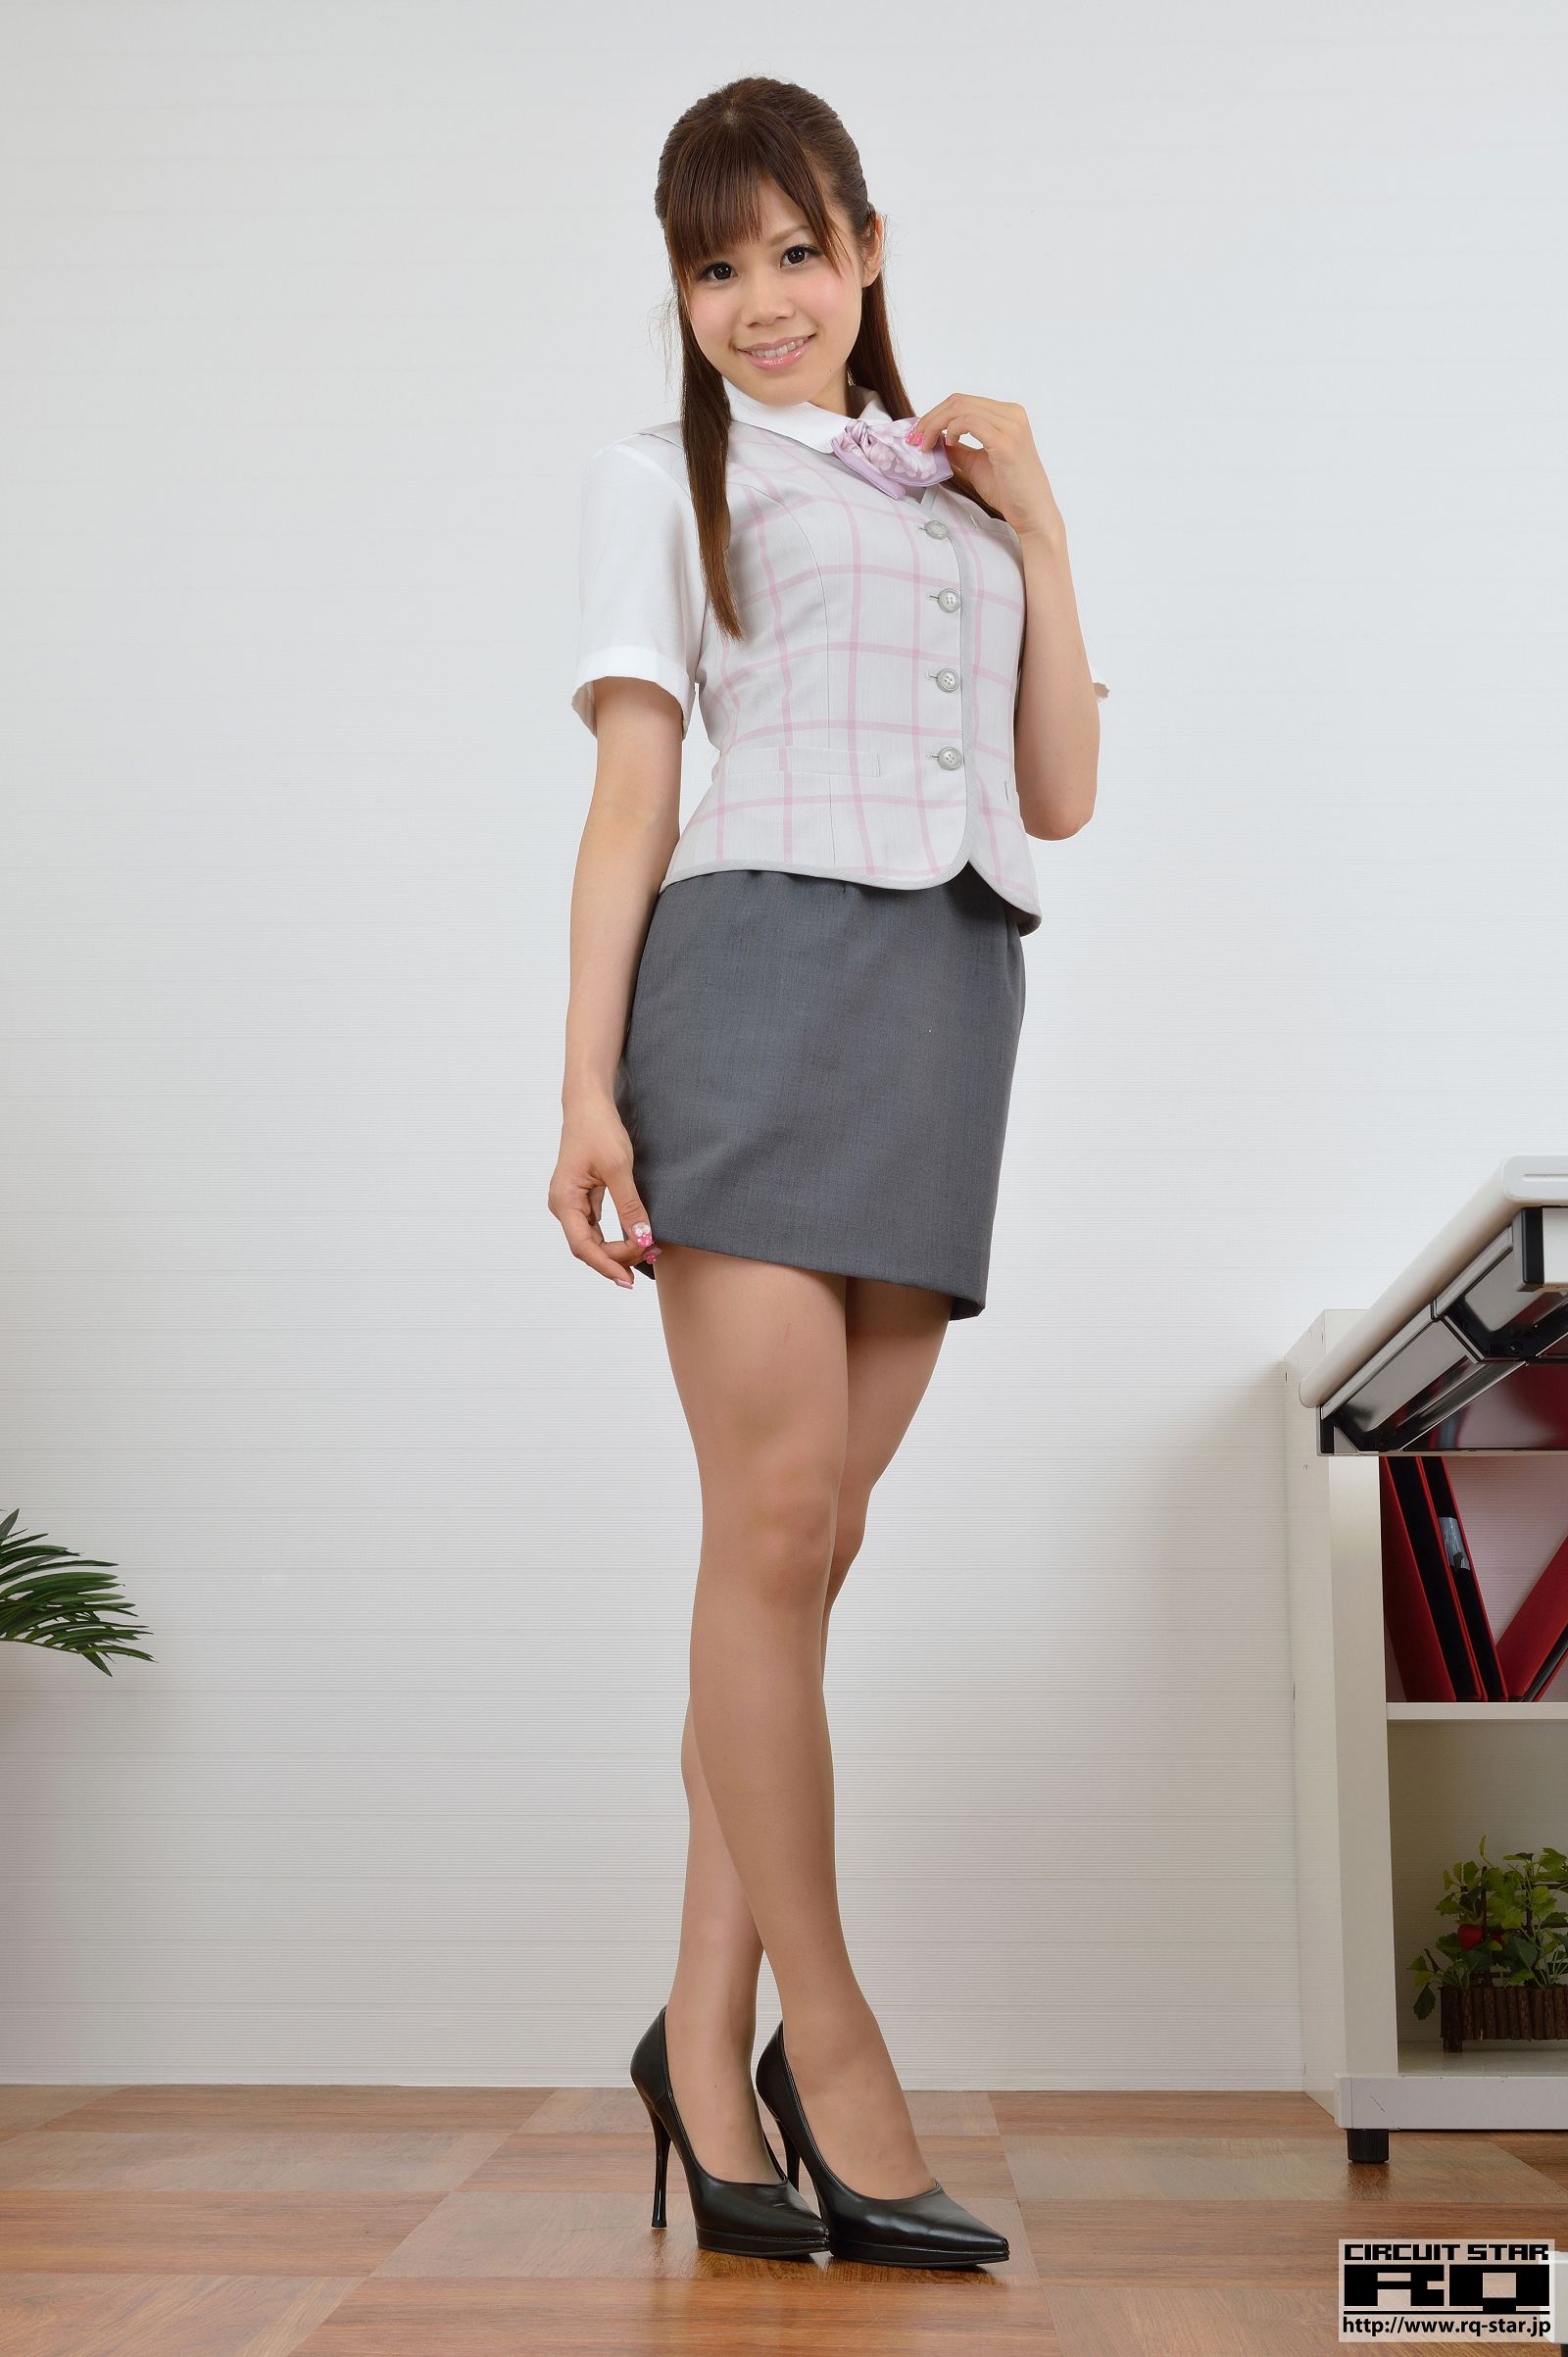 [RQ STAR美女] NO.00985 Asuka Nakano 中野あすか Office Lady[100P] RQ STAR 第1张